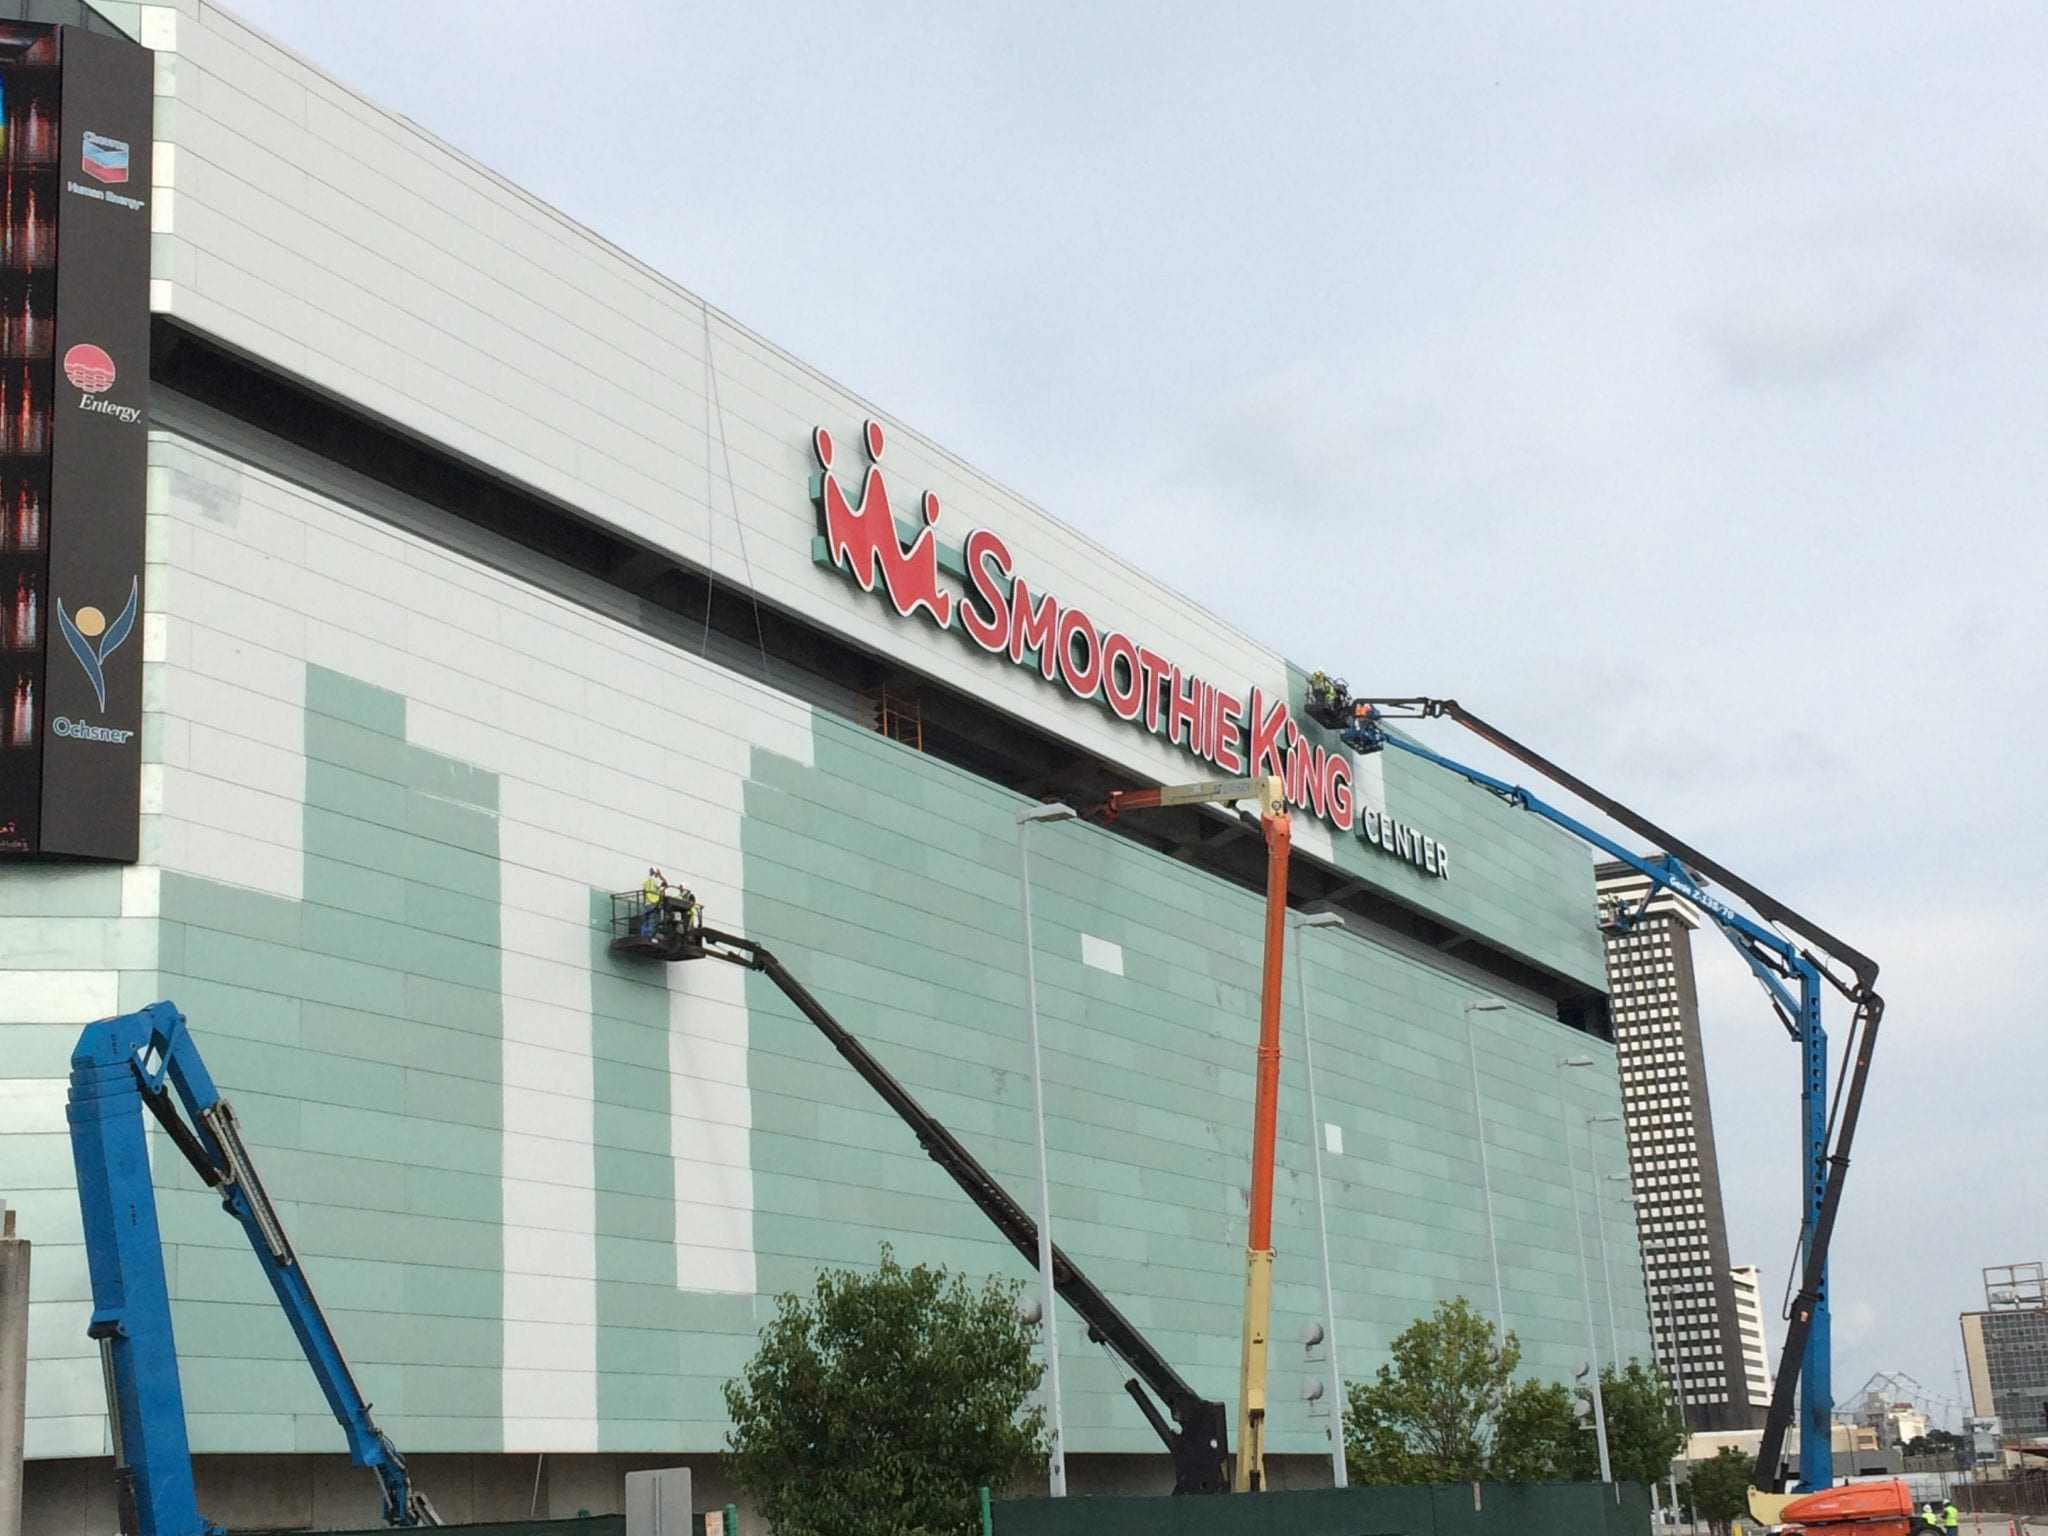 Repainting exterior of smoothie king center